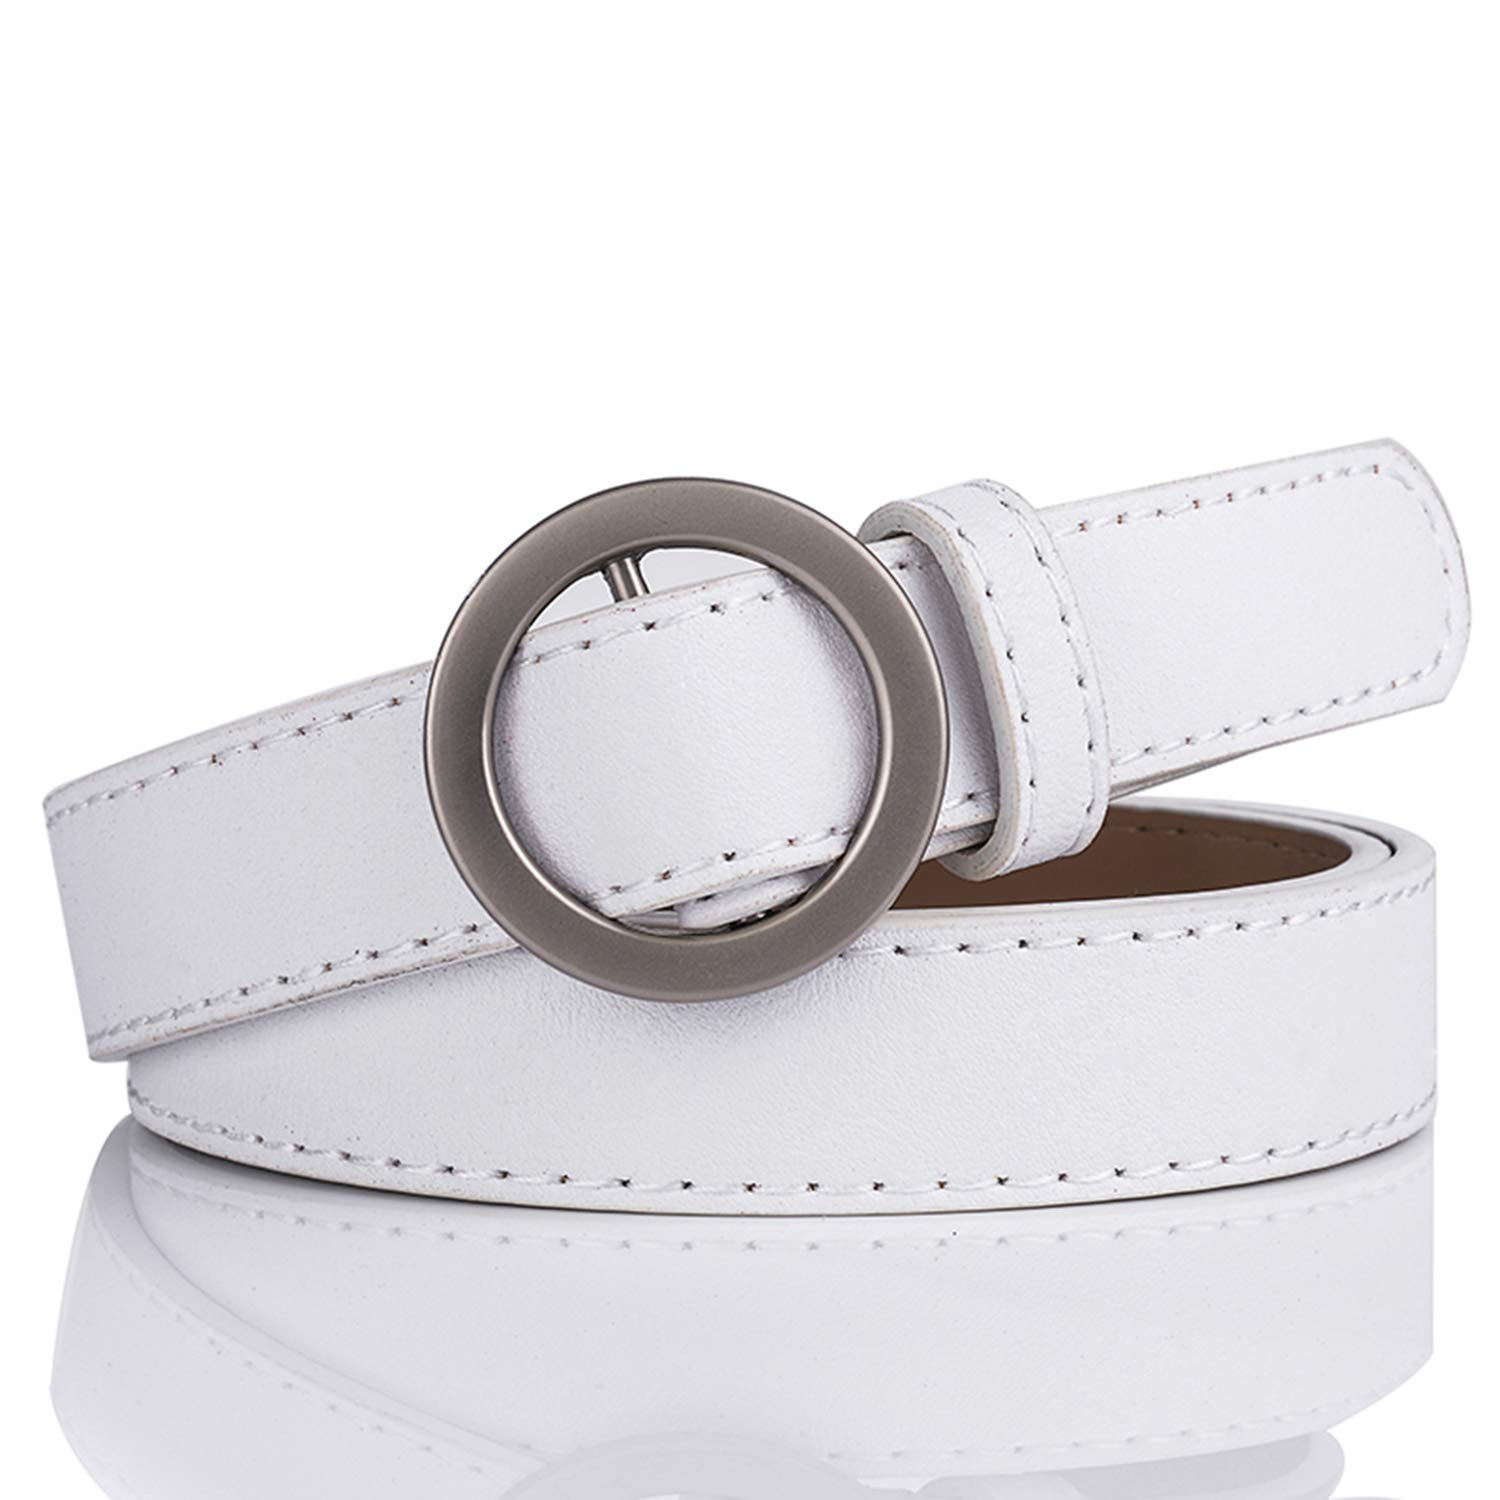 Wine Red DFLJ New Vintage Pure Leather Round Buckle Leather Women's Thin Belt Wine Red